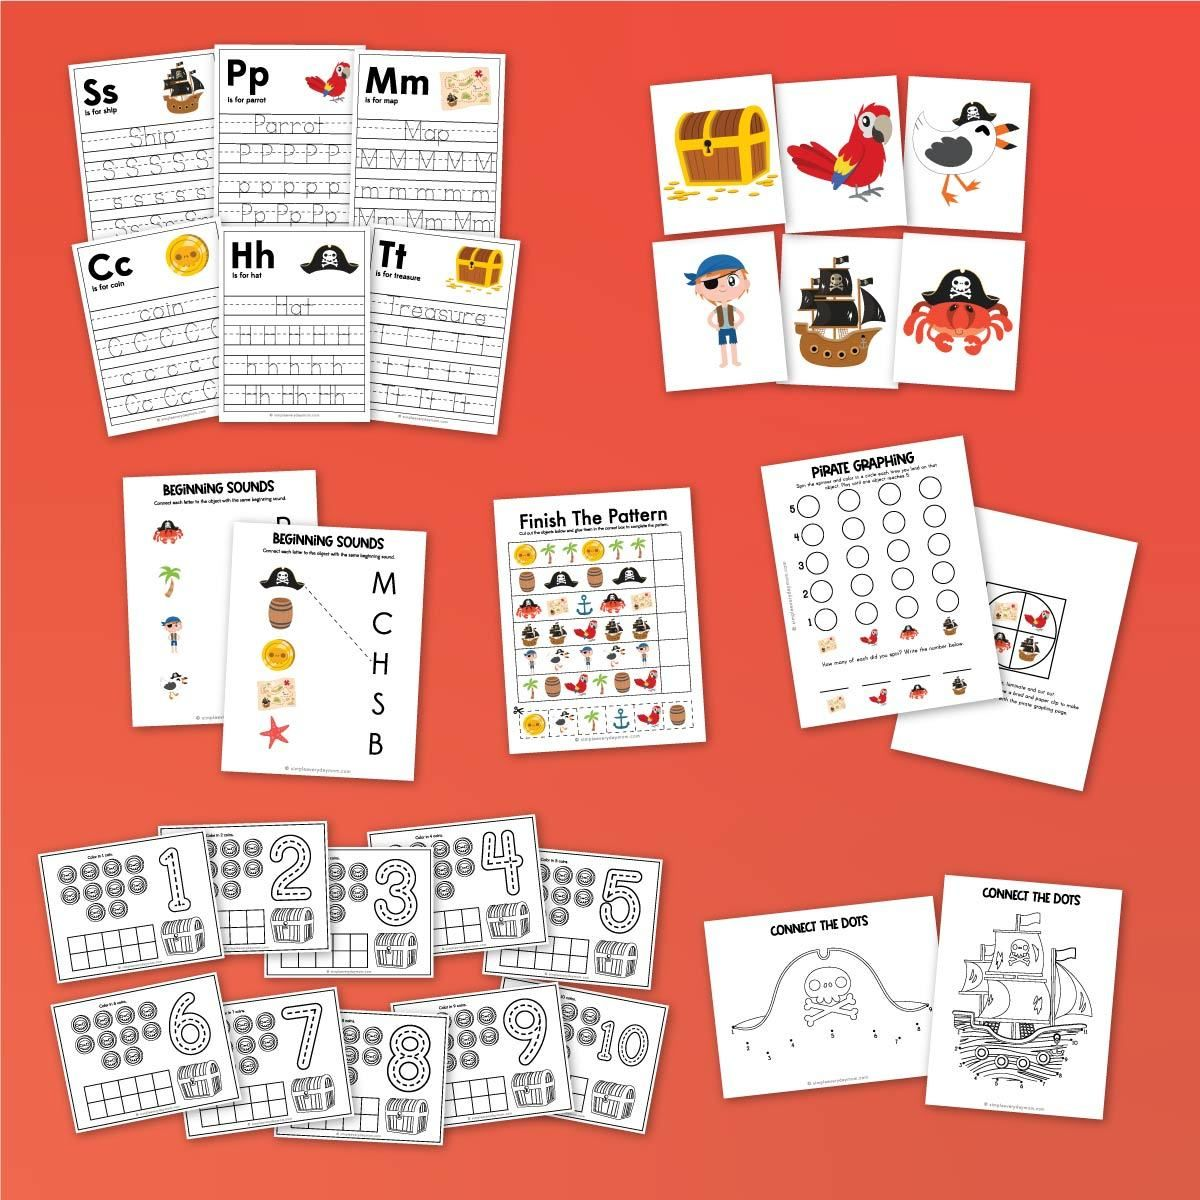 Pirate Worksheets For Kids Worksheets For Kids Pirate Activities Graphing Worksheets [ 1200 x 1200 Pixel ]